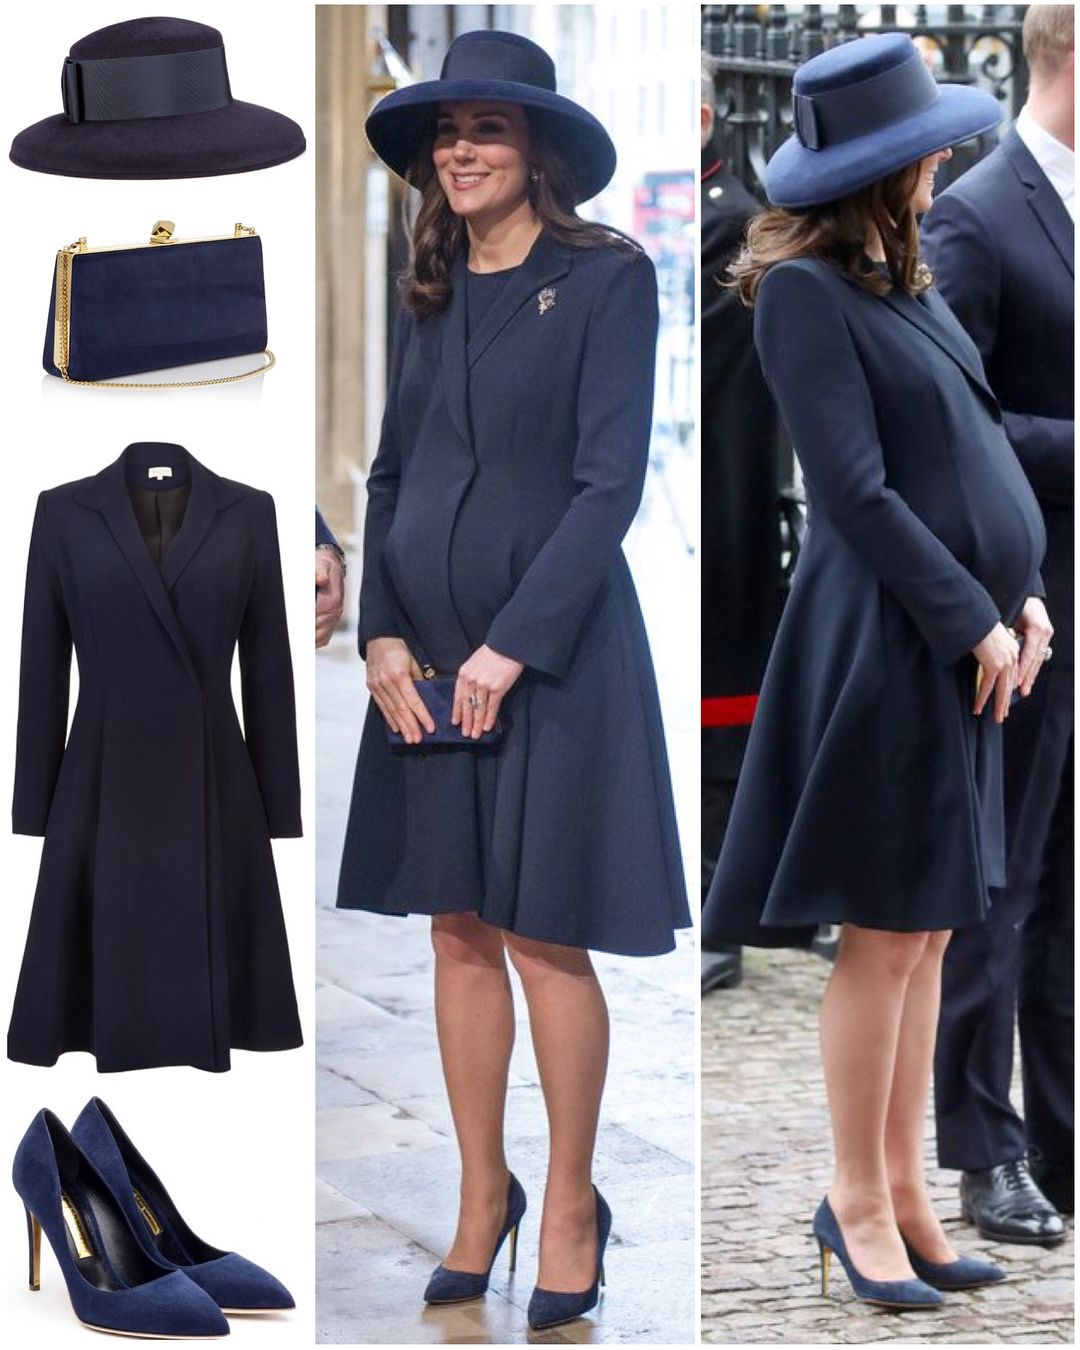 0ececcfcdc The Duchess looked stunning in a repeated outfit for today s Commonwealth  Day Service at Westminster Abbey. Kate s navy Beulah London…